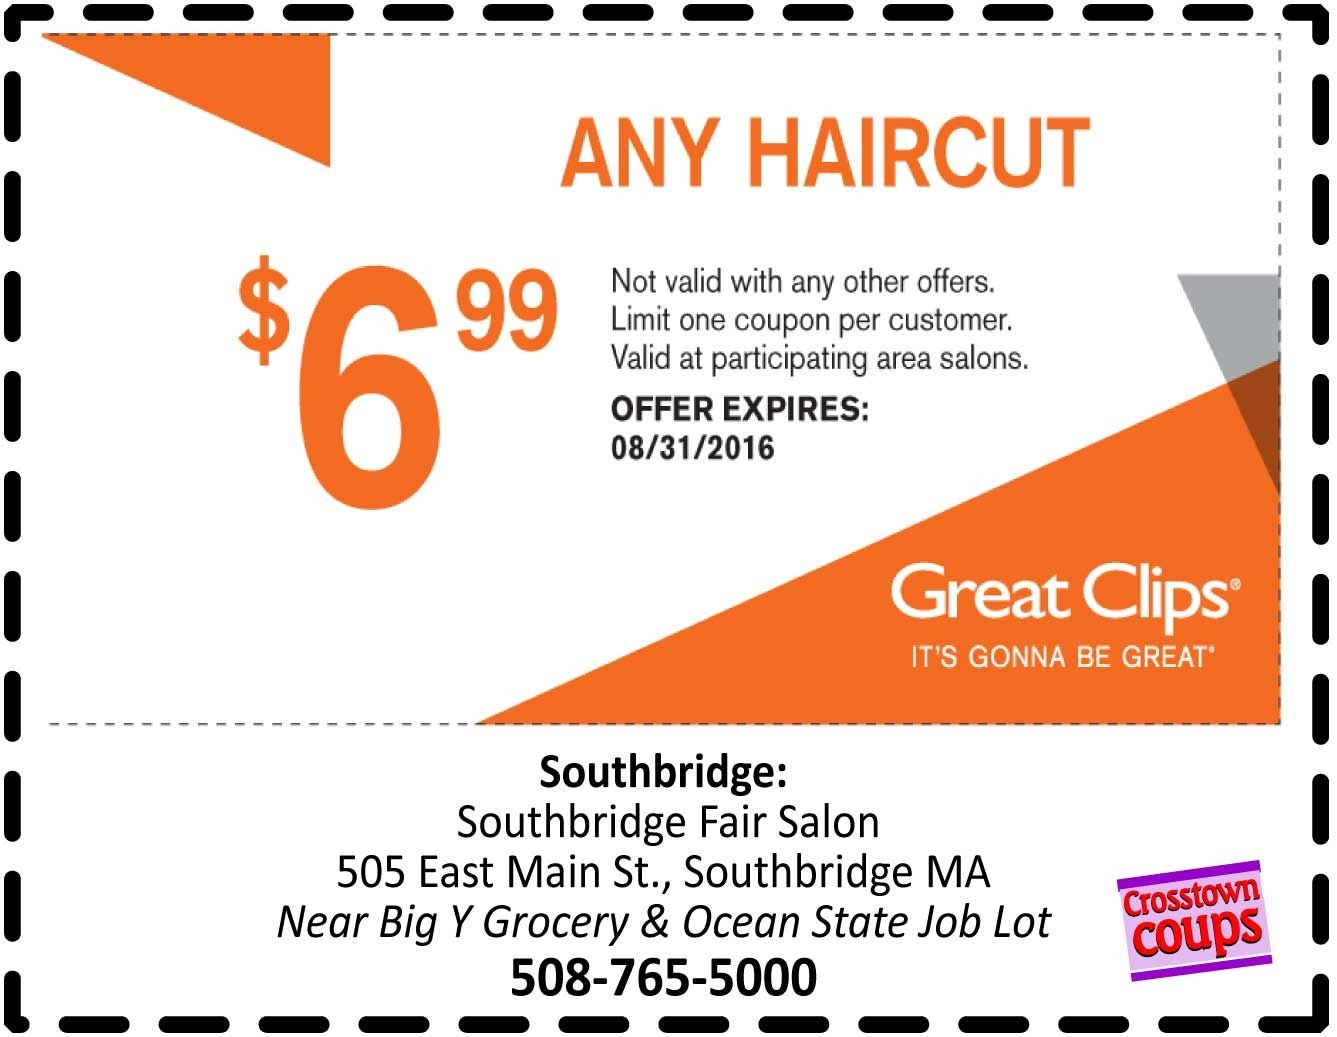 27 Great Clips Free Haircut Coupon | Hairstyles Ideas - Great Clips Free Coupons Printable